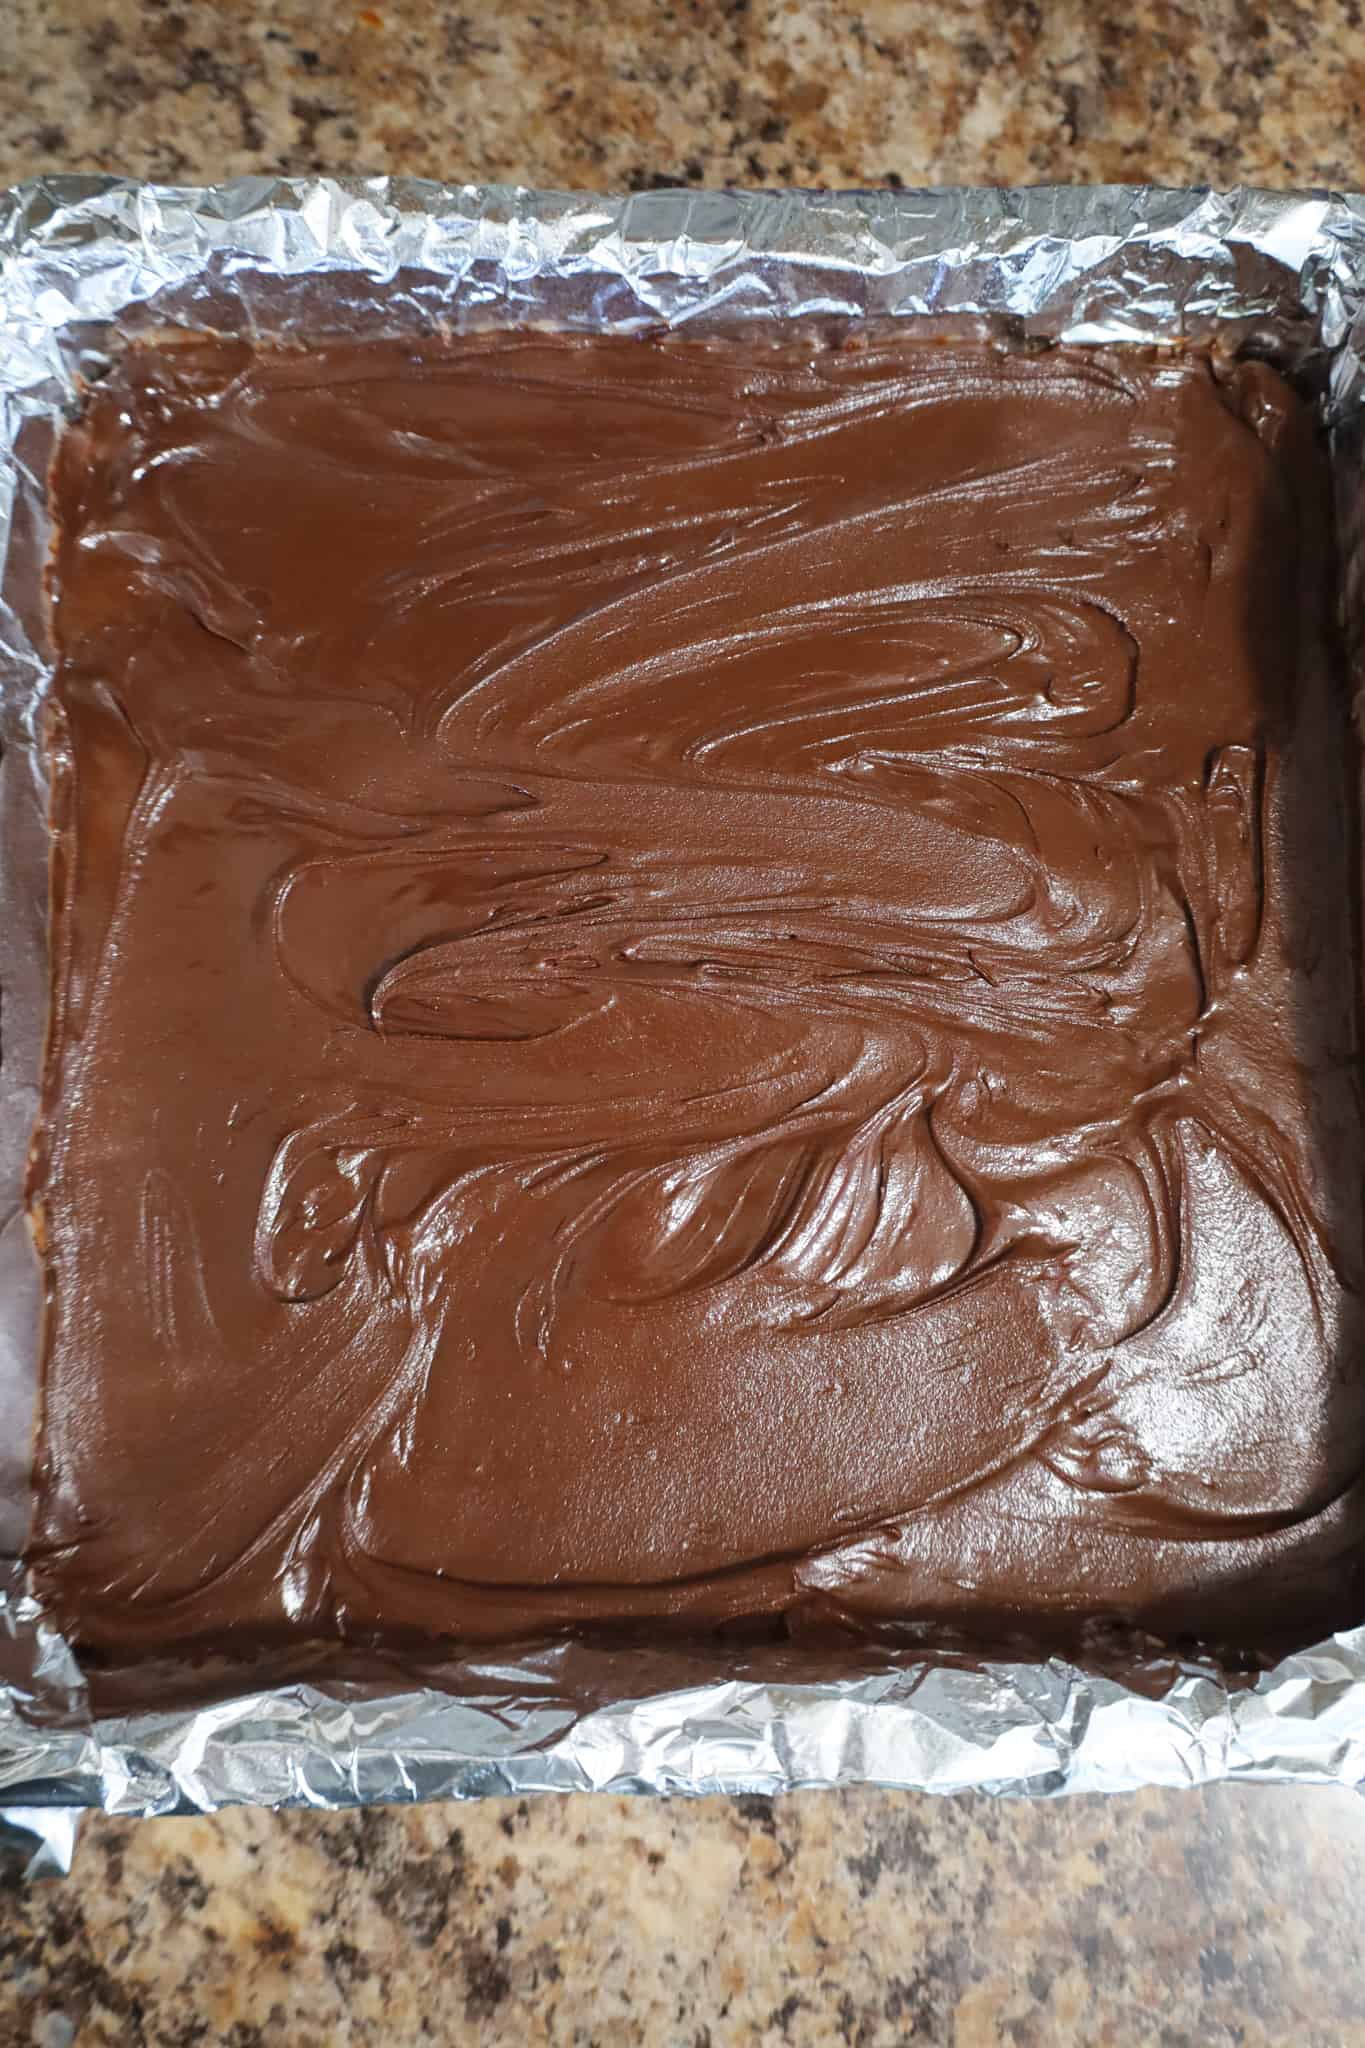 melted chocolate spread on top of peanut butter bars in a baking pan